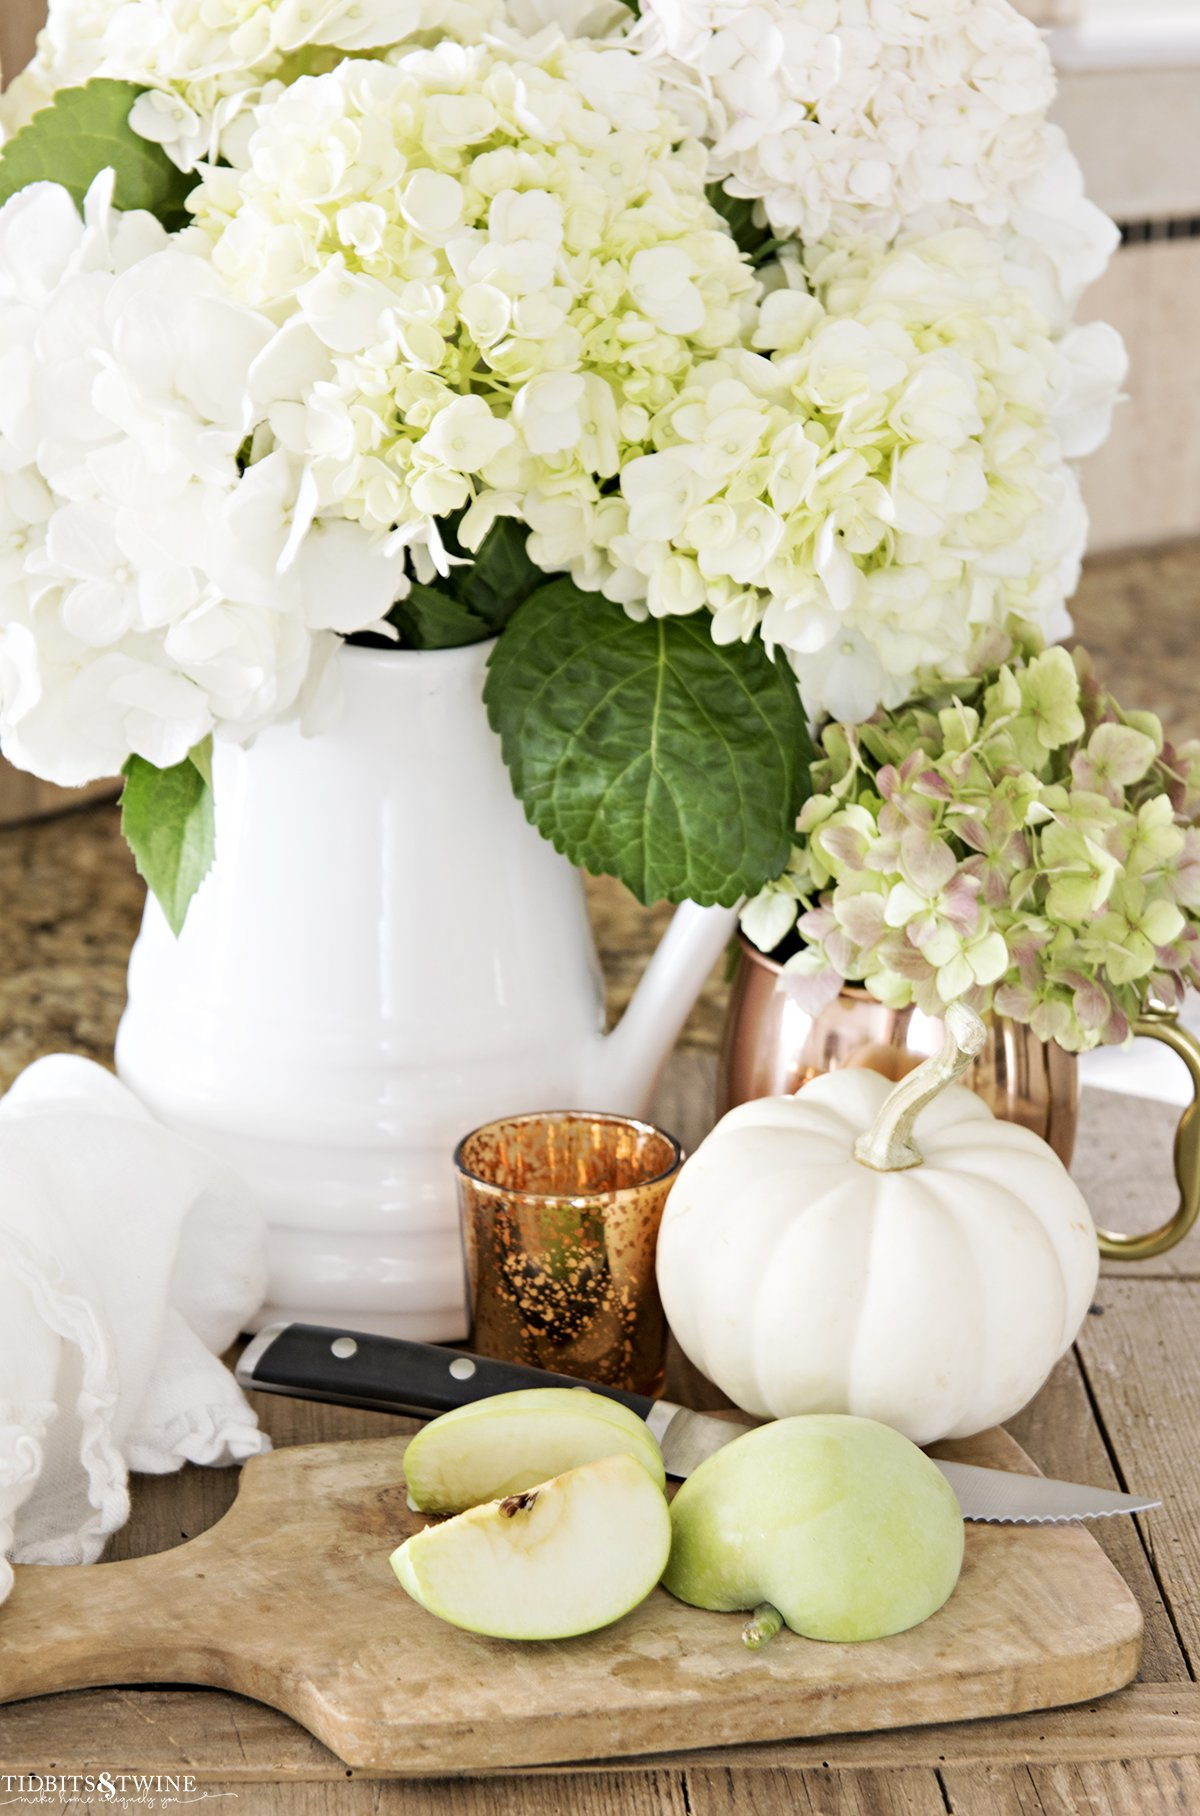 white pitcher with white hydrangeas and copper mug with green hydrangea and cutting board with cut apple